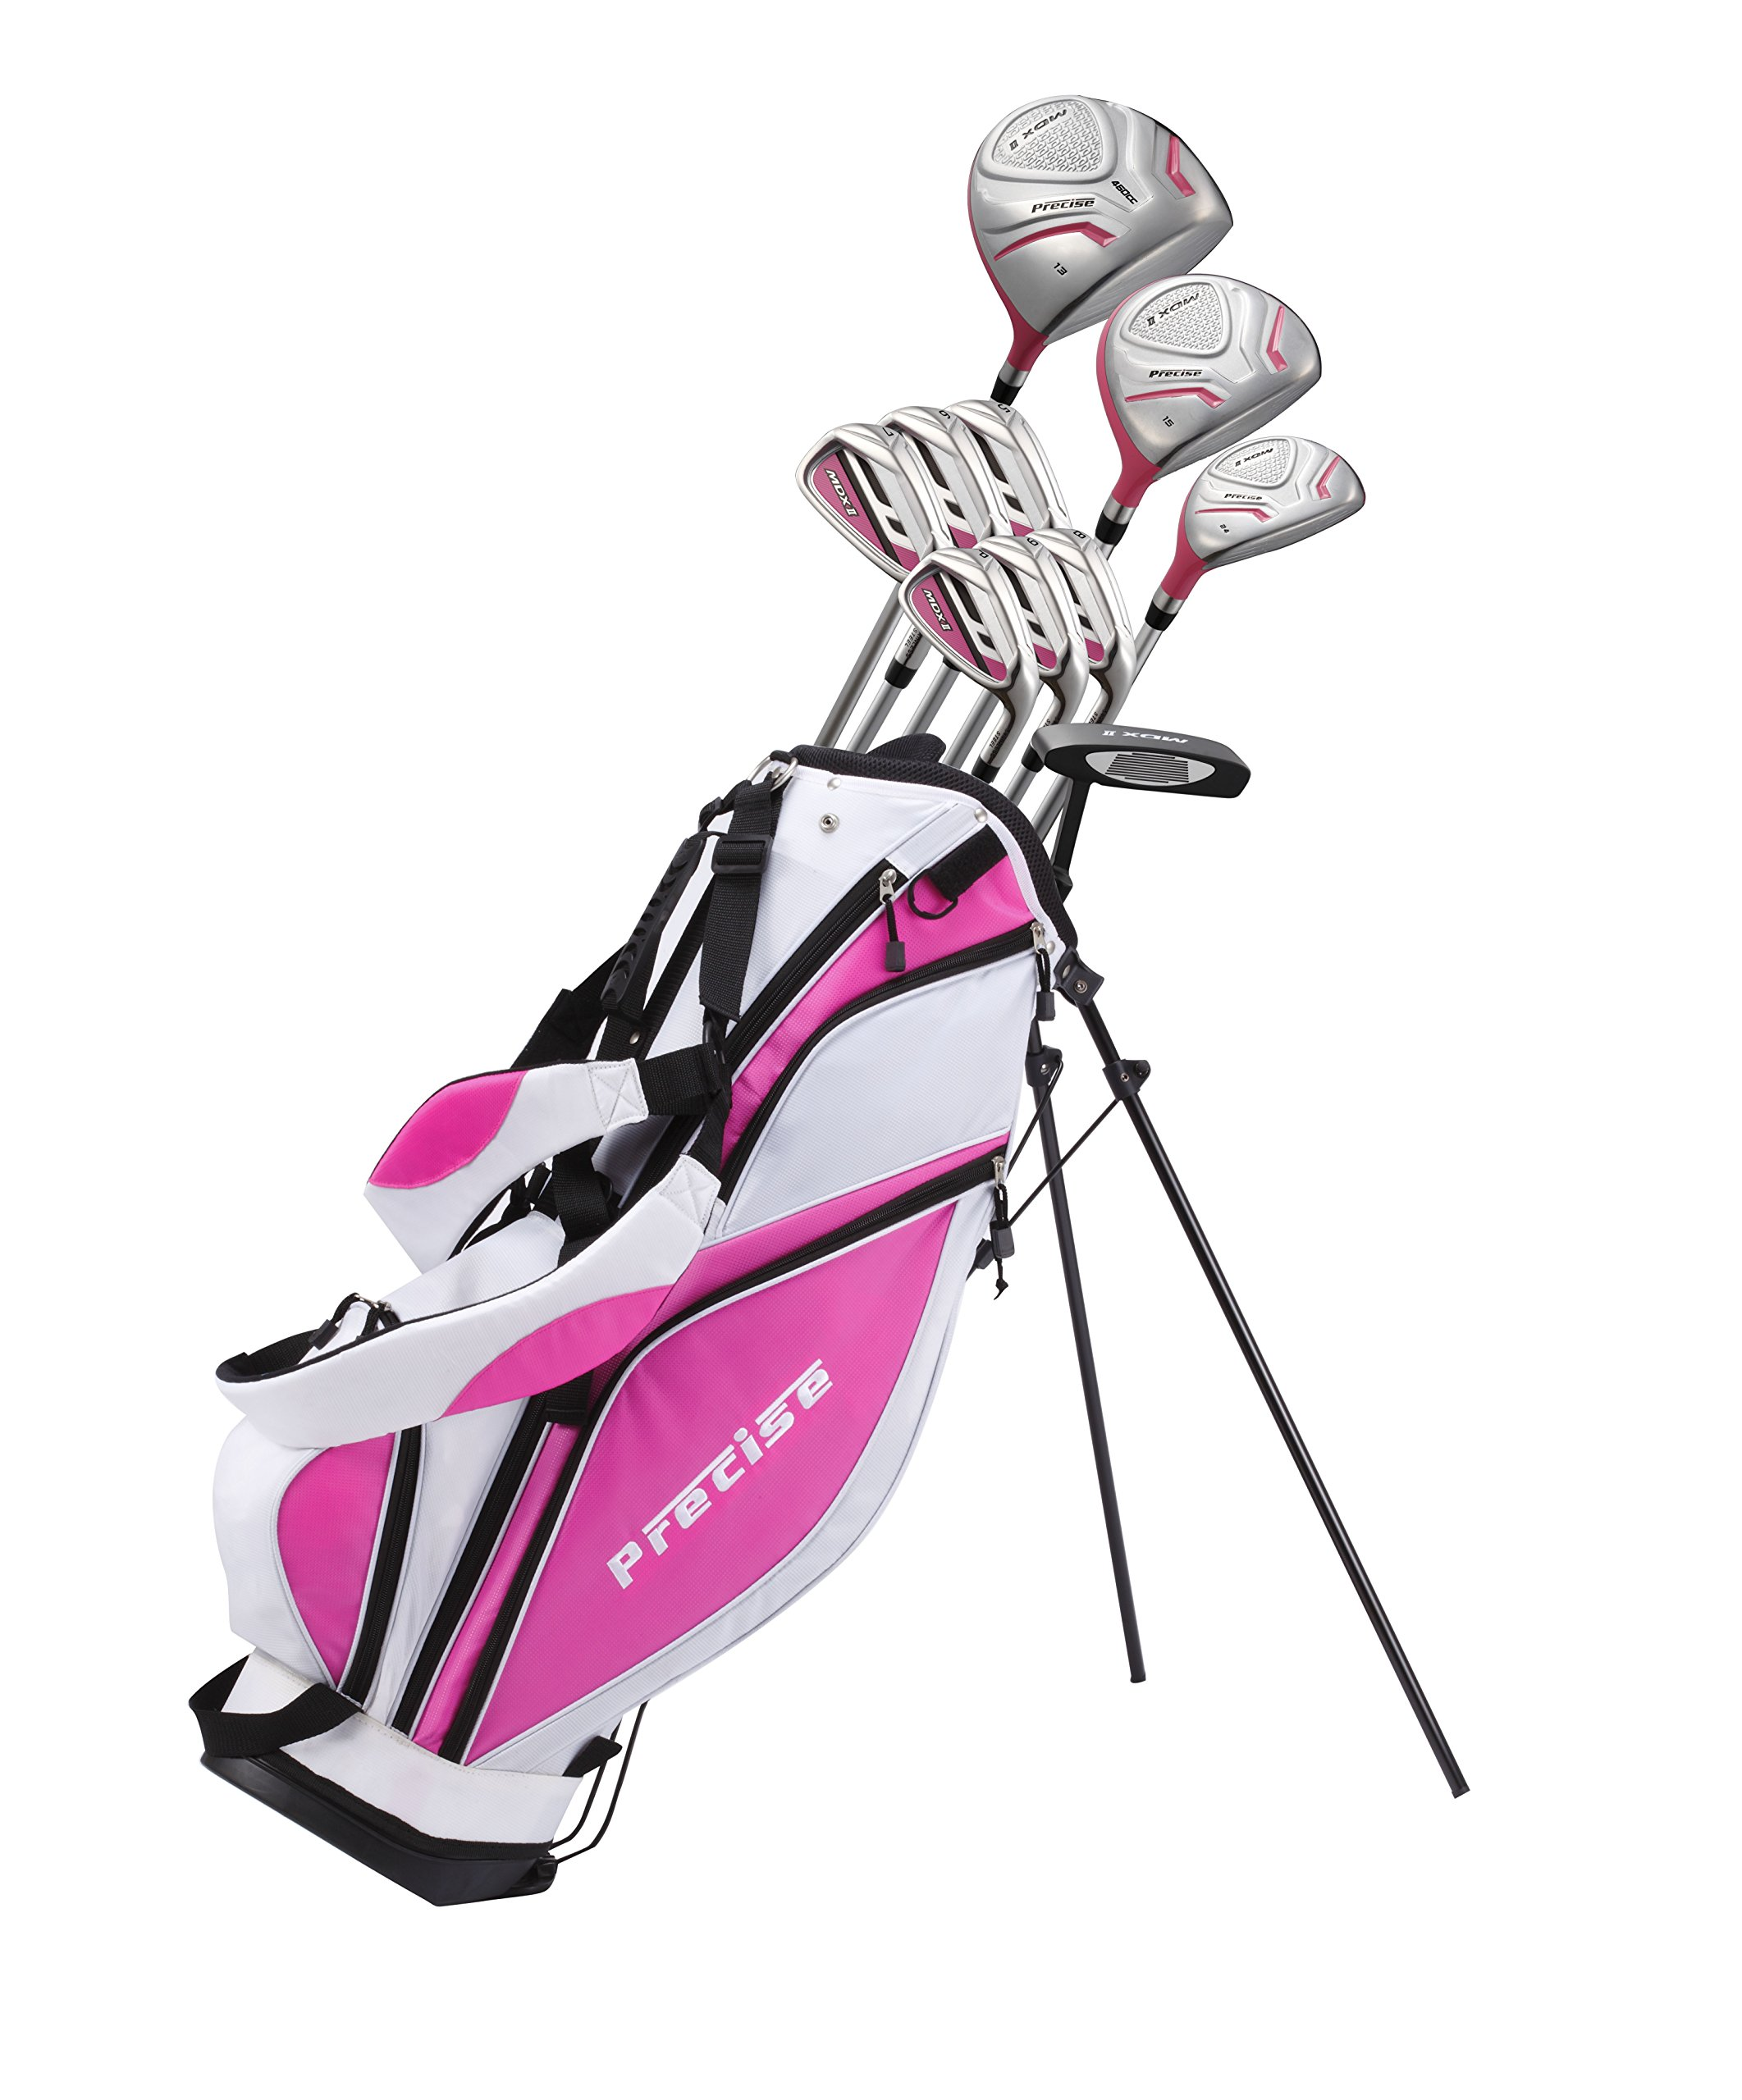 Precise Premium Ladies Womens Complete Golf Clubs Set Includes Driver, Fairway, Hybrid, S.S. 5-PW Irons, Putter, Stand Bag, 3 H/C's - 2 Colors Available! (Pink, Right Hand)